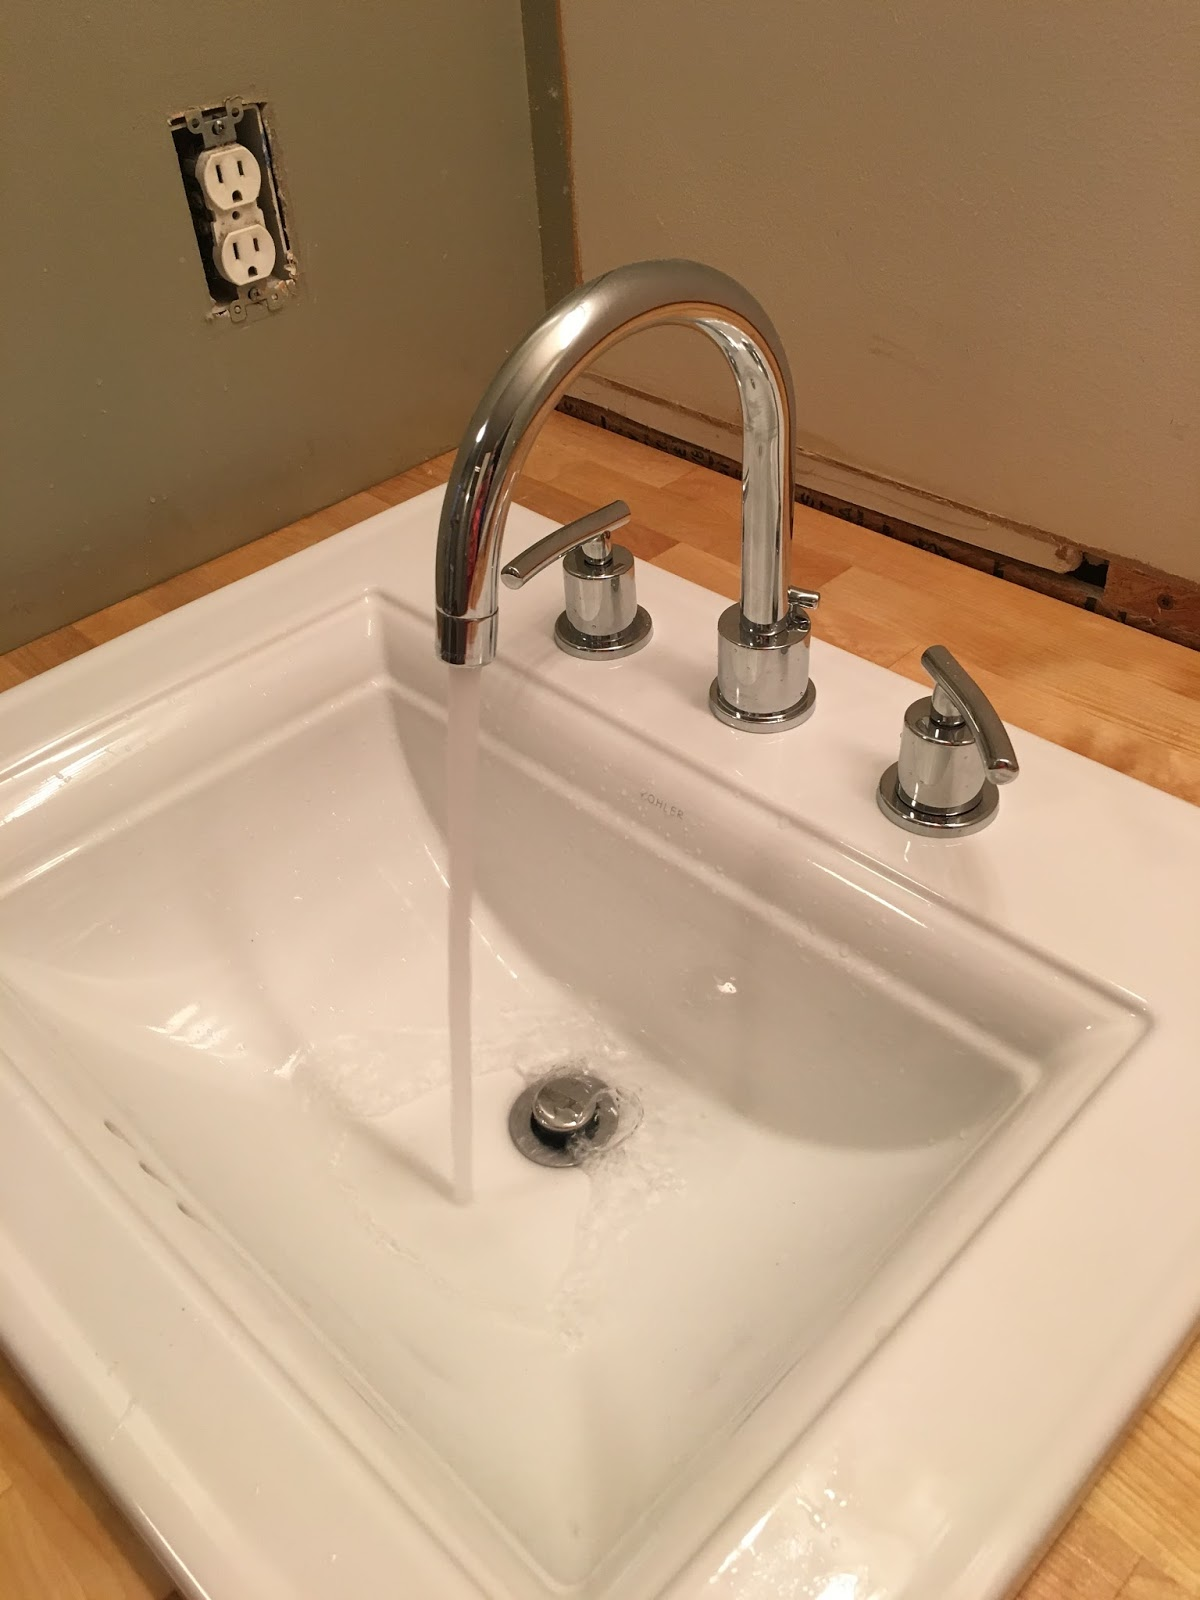 Elegant Master Bath Remodel Update Sinks and Faucets